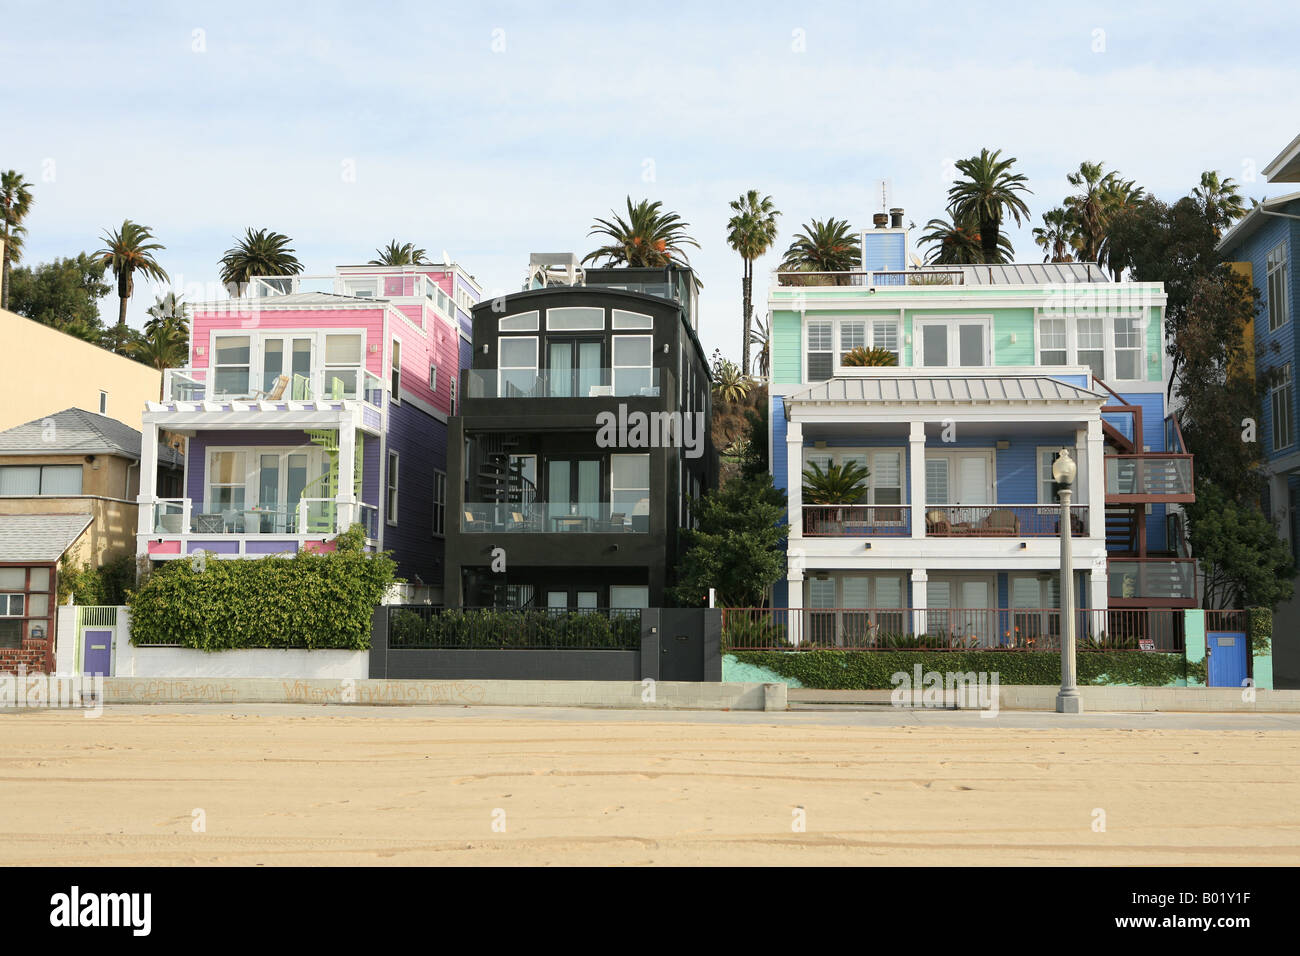 strandh user an der strandpromenade von santa monica los angeles kalifornien usa stockfoto bild. Black Bedroom Furniture Sets. Home Design Ideas